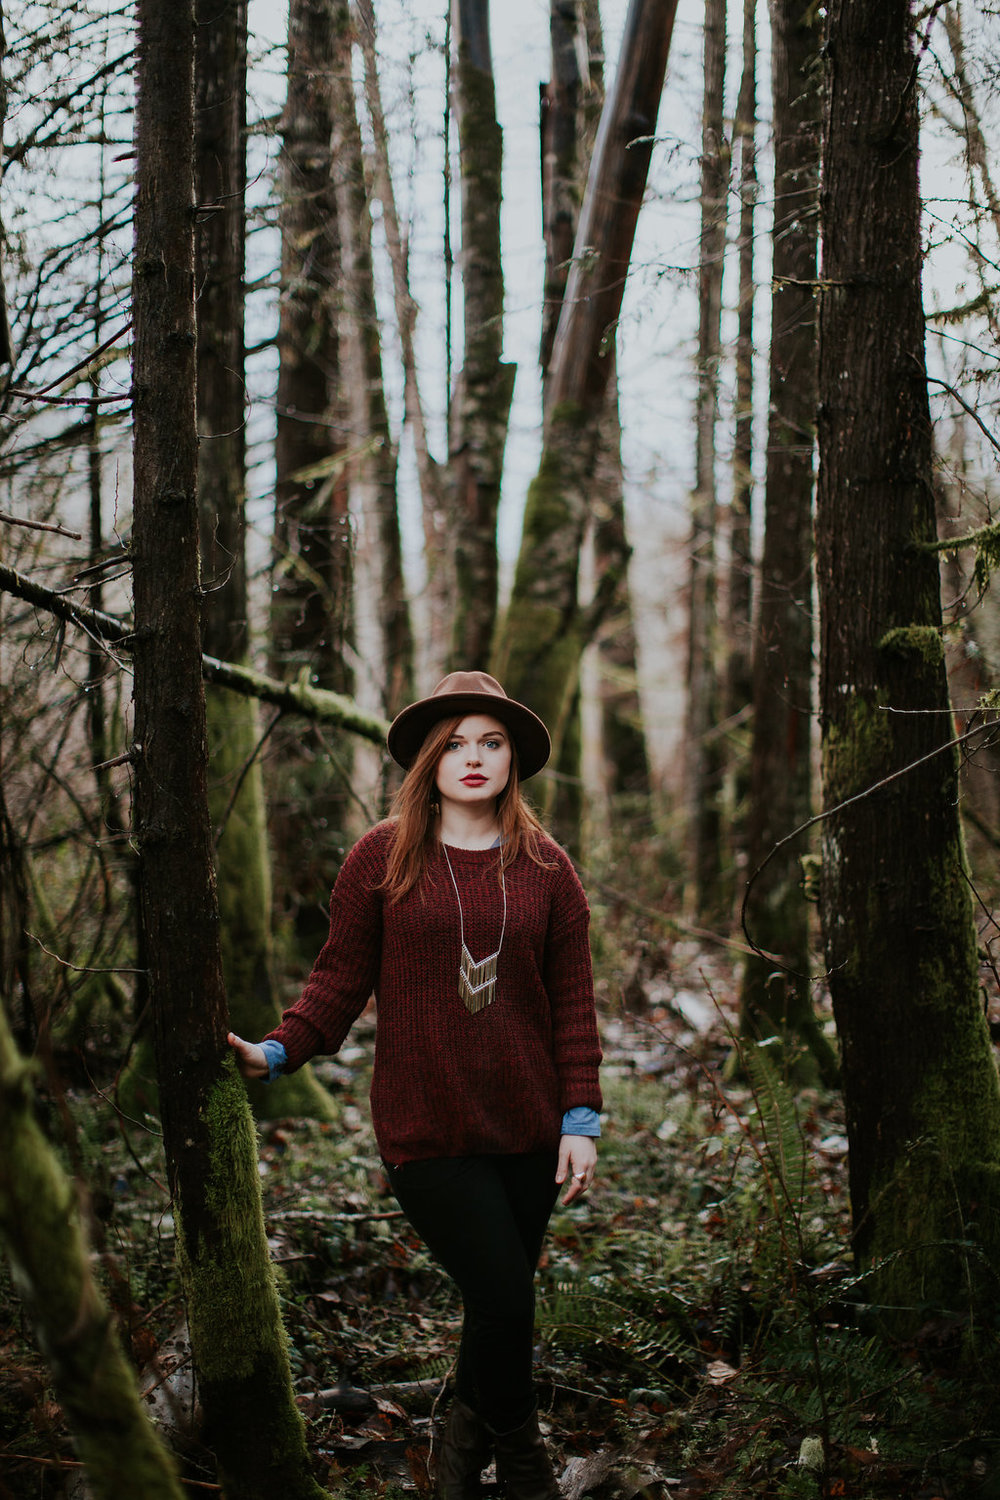 PNW-olympic-national-park-Olympic-Peninsula-Port-Angeles-Portrait-Photography-senior-photography-kayladawnphoto-5.jpg